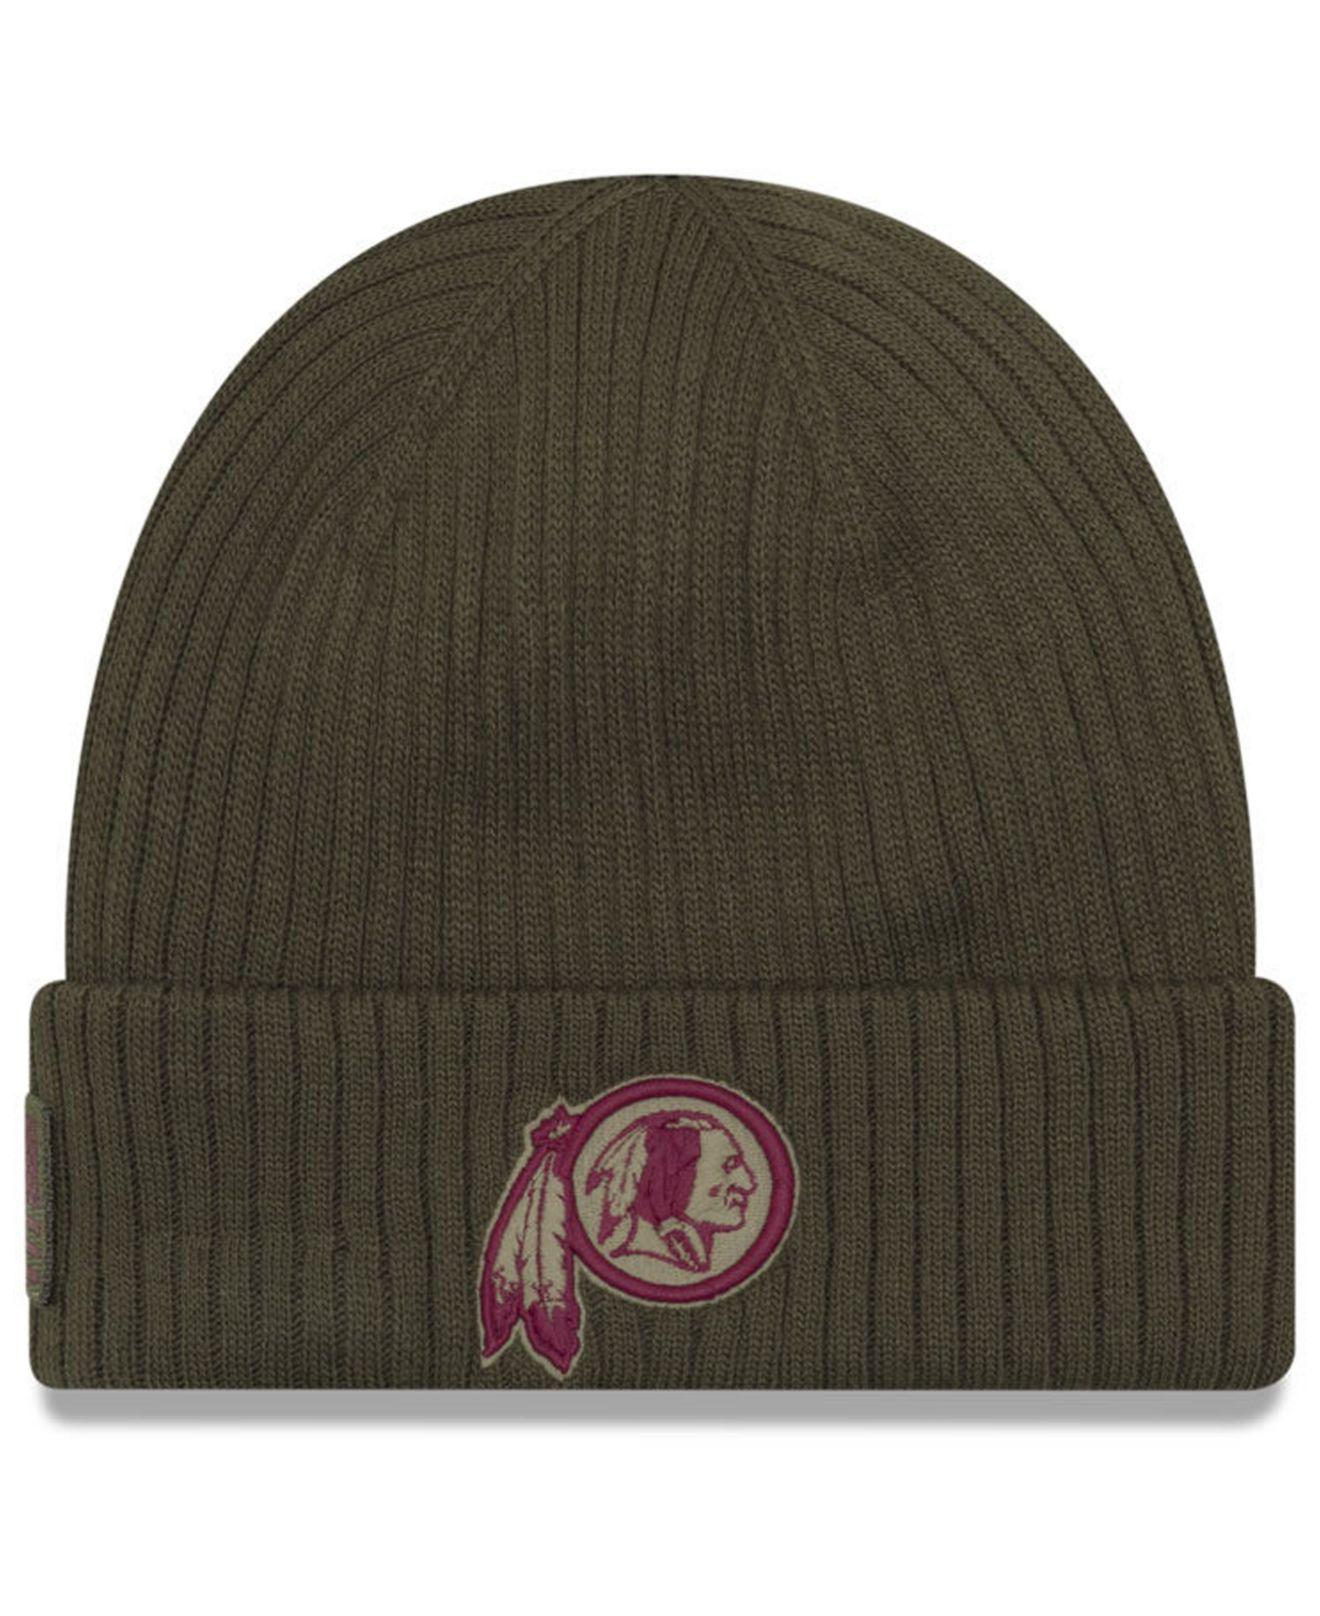 1821335631e Lyst - Ktz Washington Redskins Salute To Service Cuff Knit Hat in ...